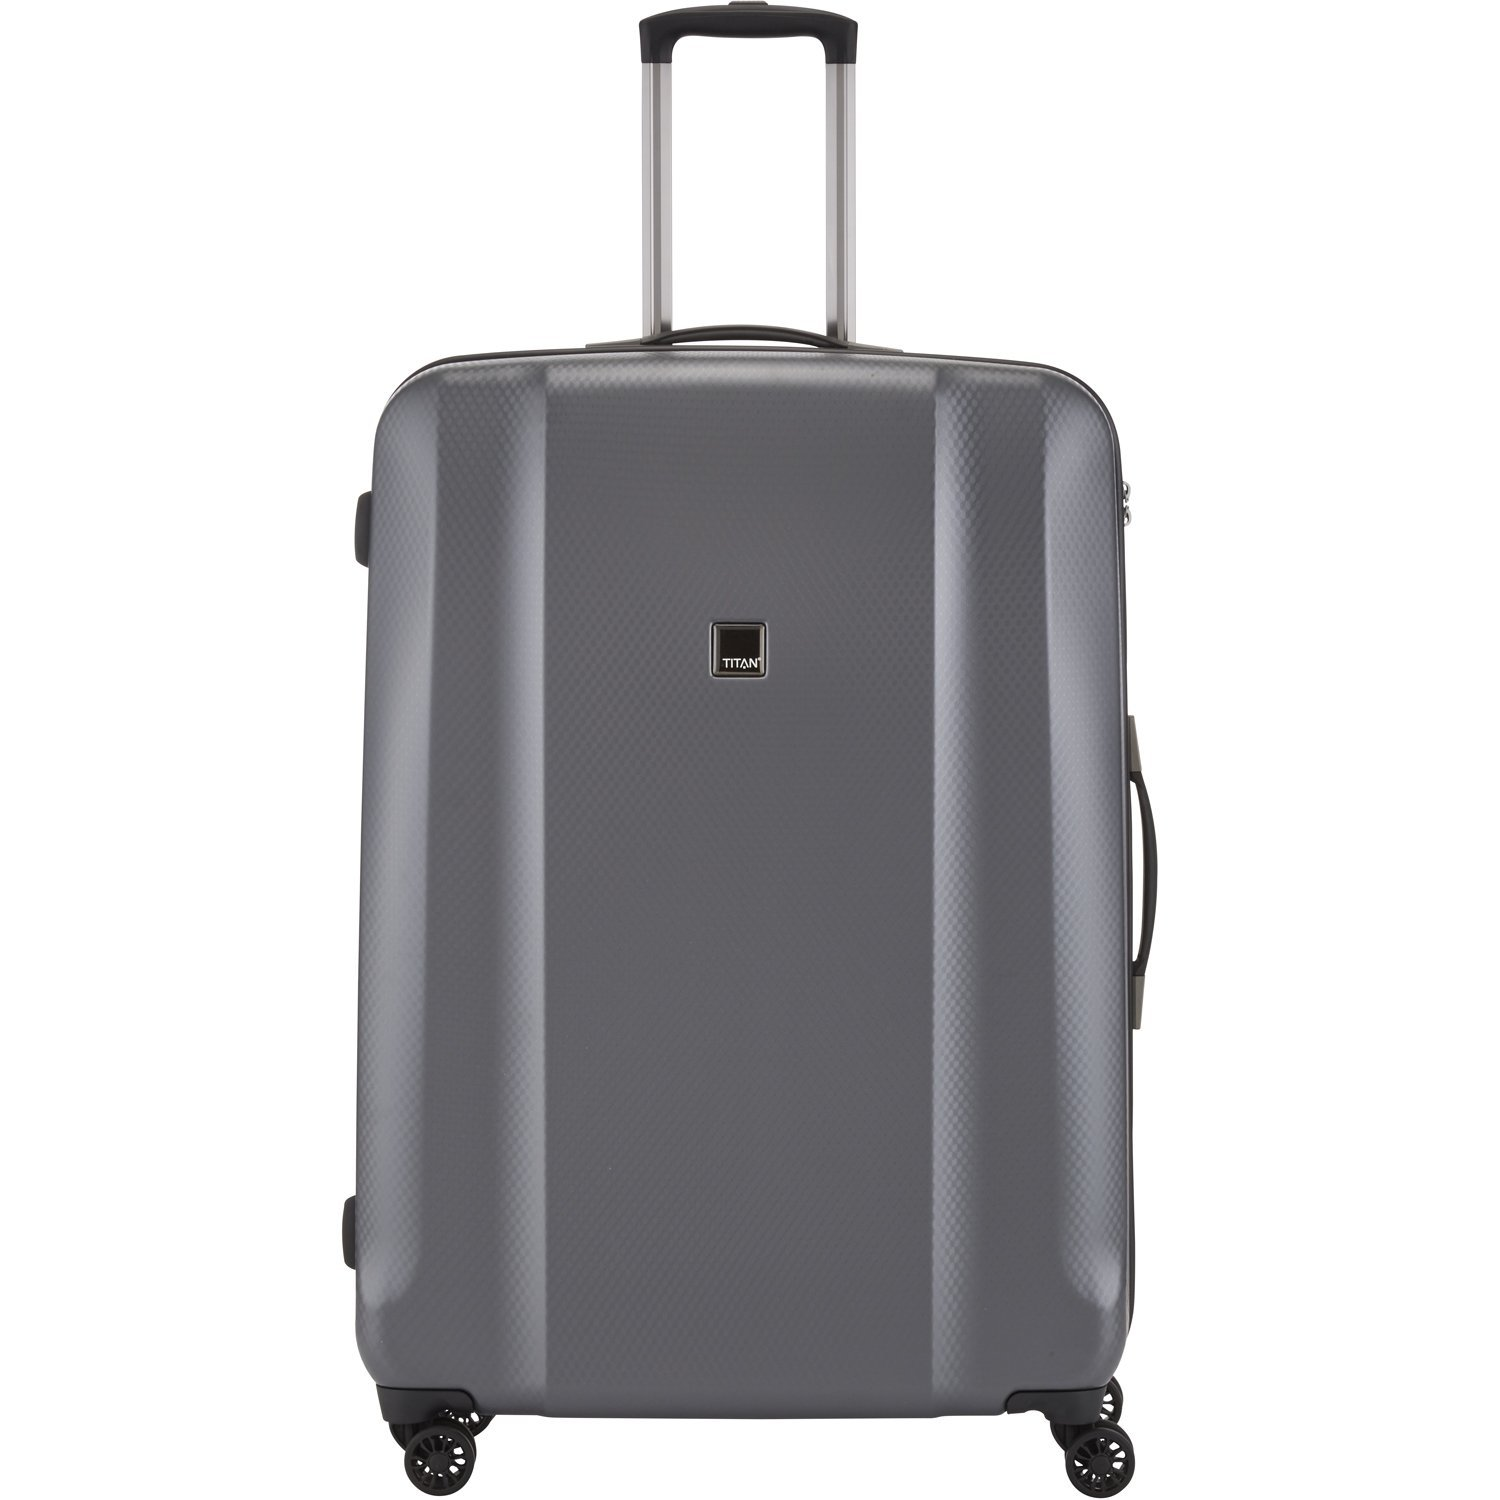 "TITAN Valise trolley ""Xenon Deluxe"" avec 4 roues graphite Koffer, 81 cm, 140 liters, Grau (Graphite)"